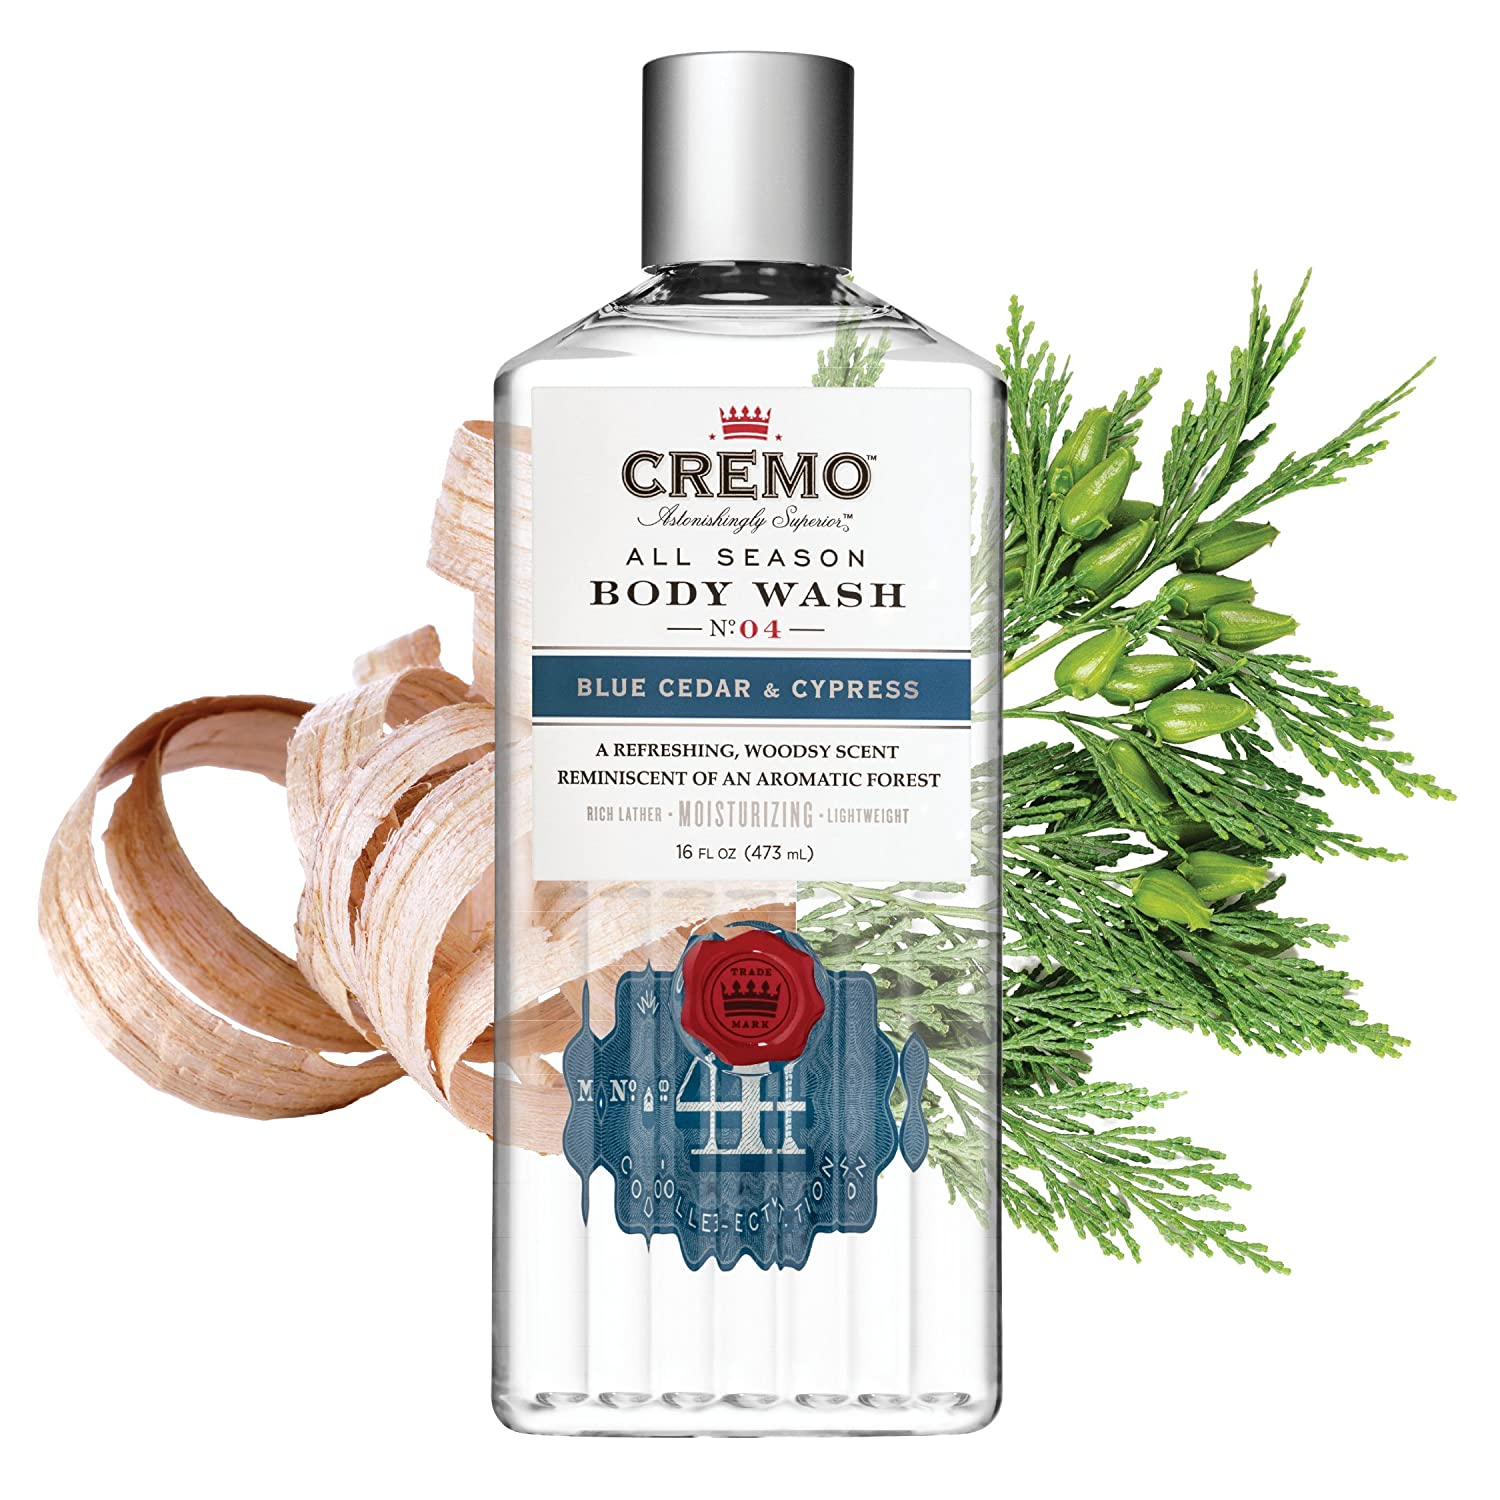 Cremo All Season Body Wash, Blue Cedar Cypress, 16 Ounce, 2-pack – Rich, Powerful Fragrance of Refreshing Blue Cedar Wood, Aromatic Cypress and a Citrus Zest